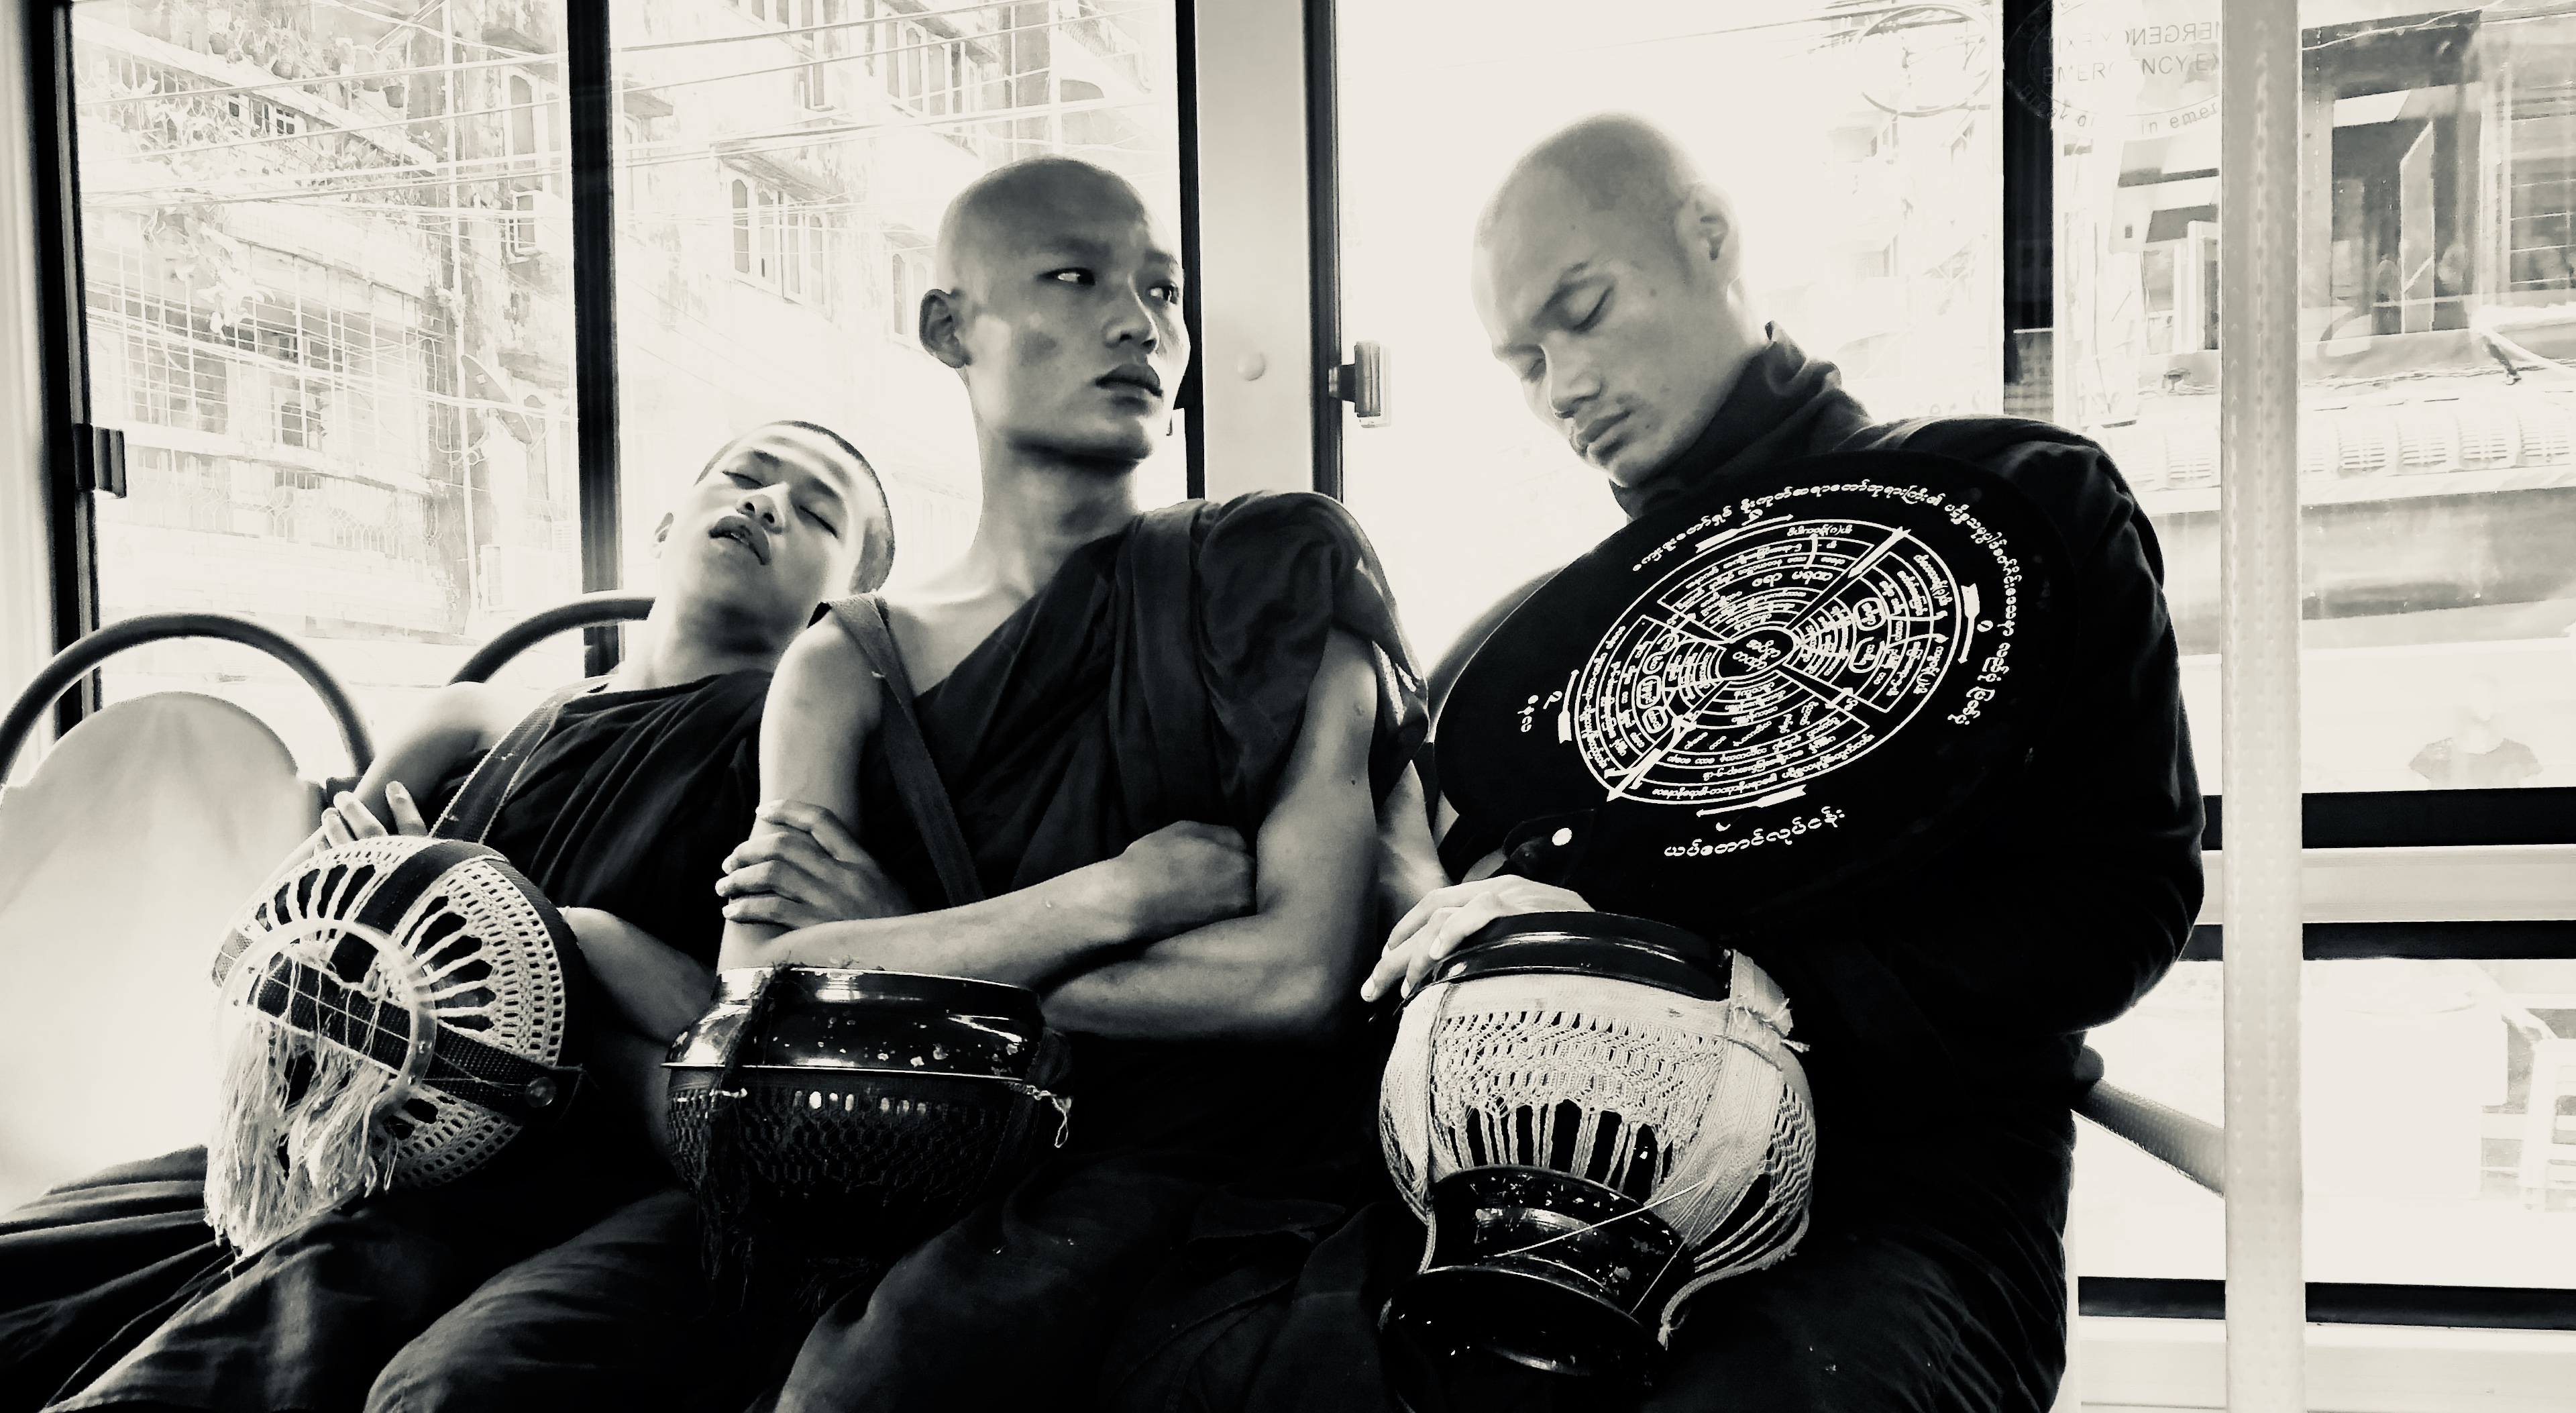 Three monks, bus